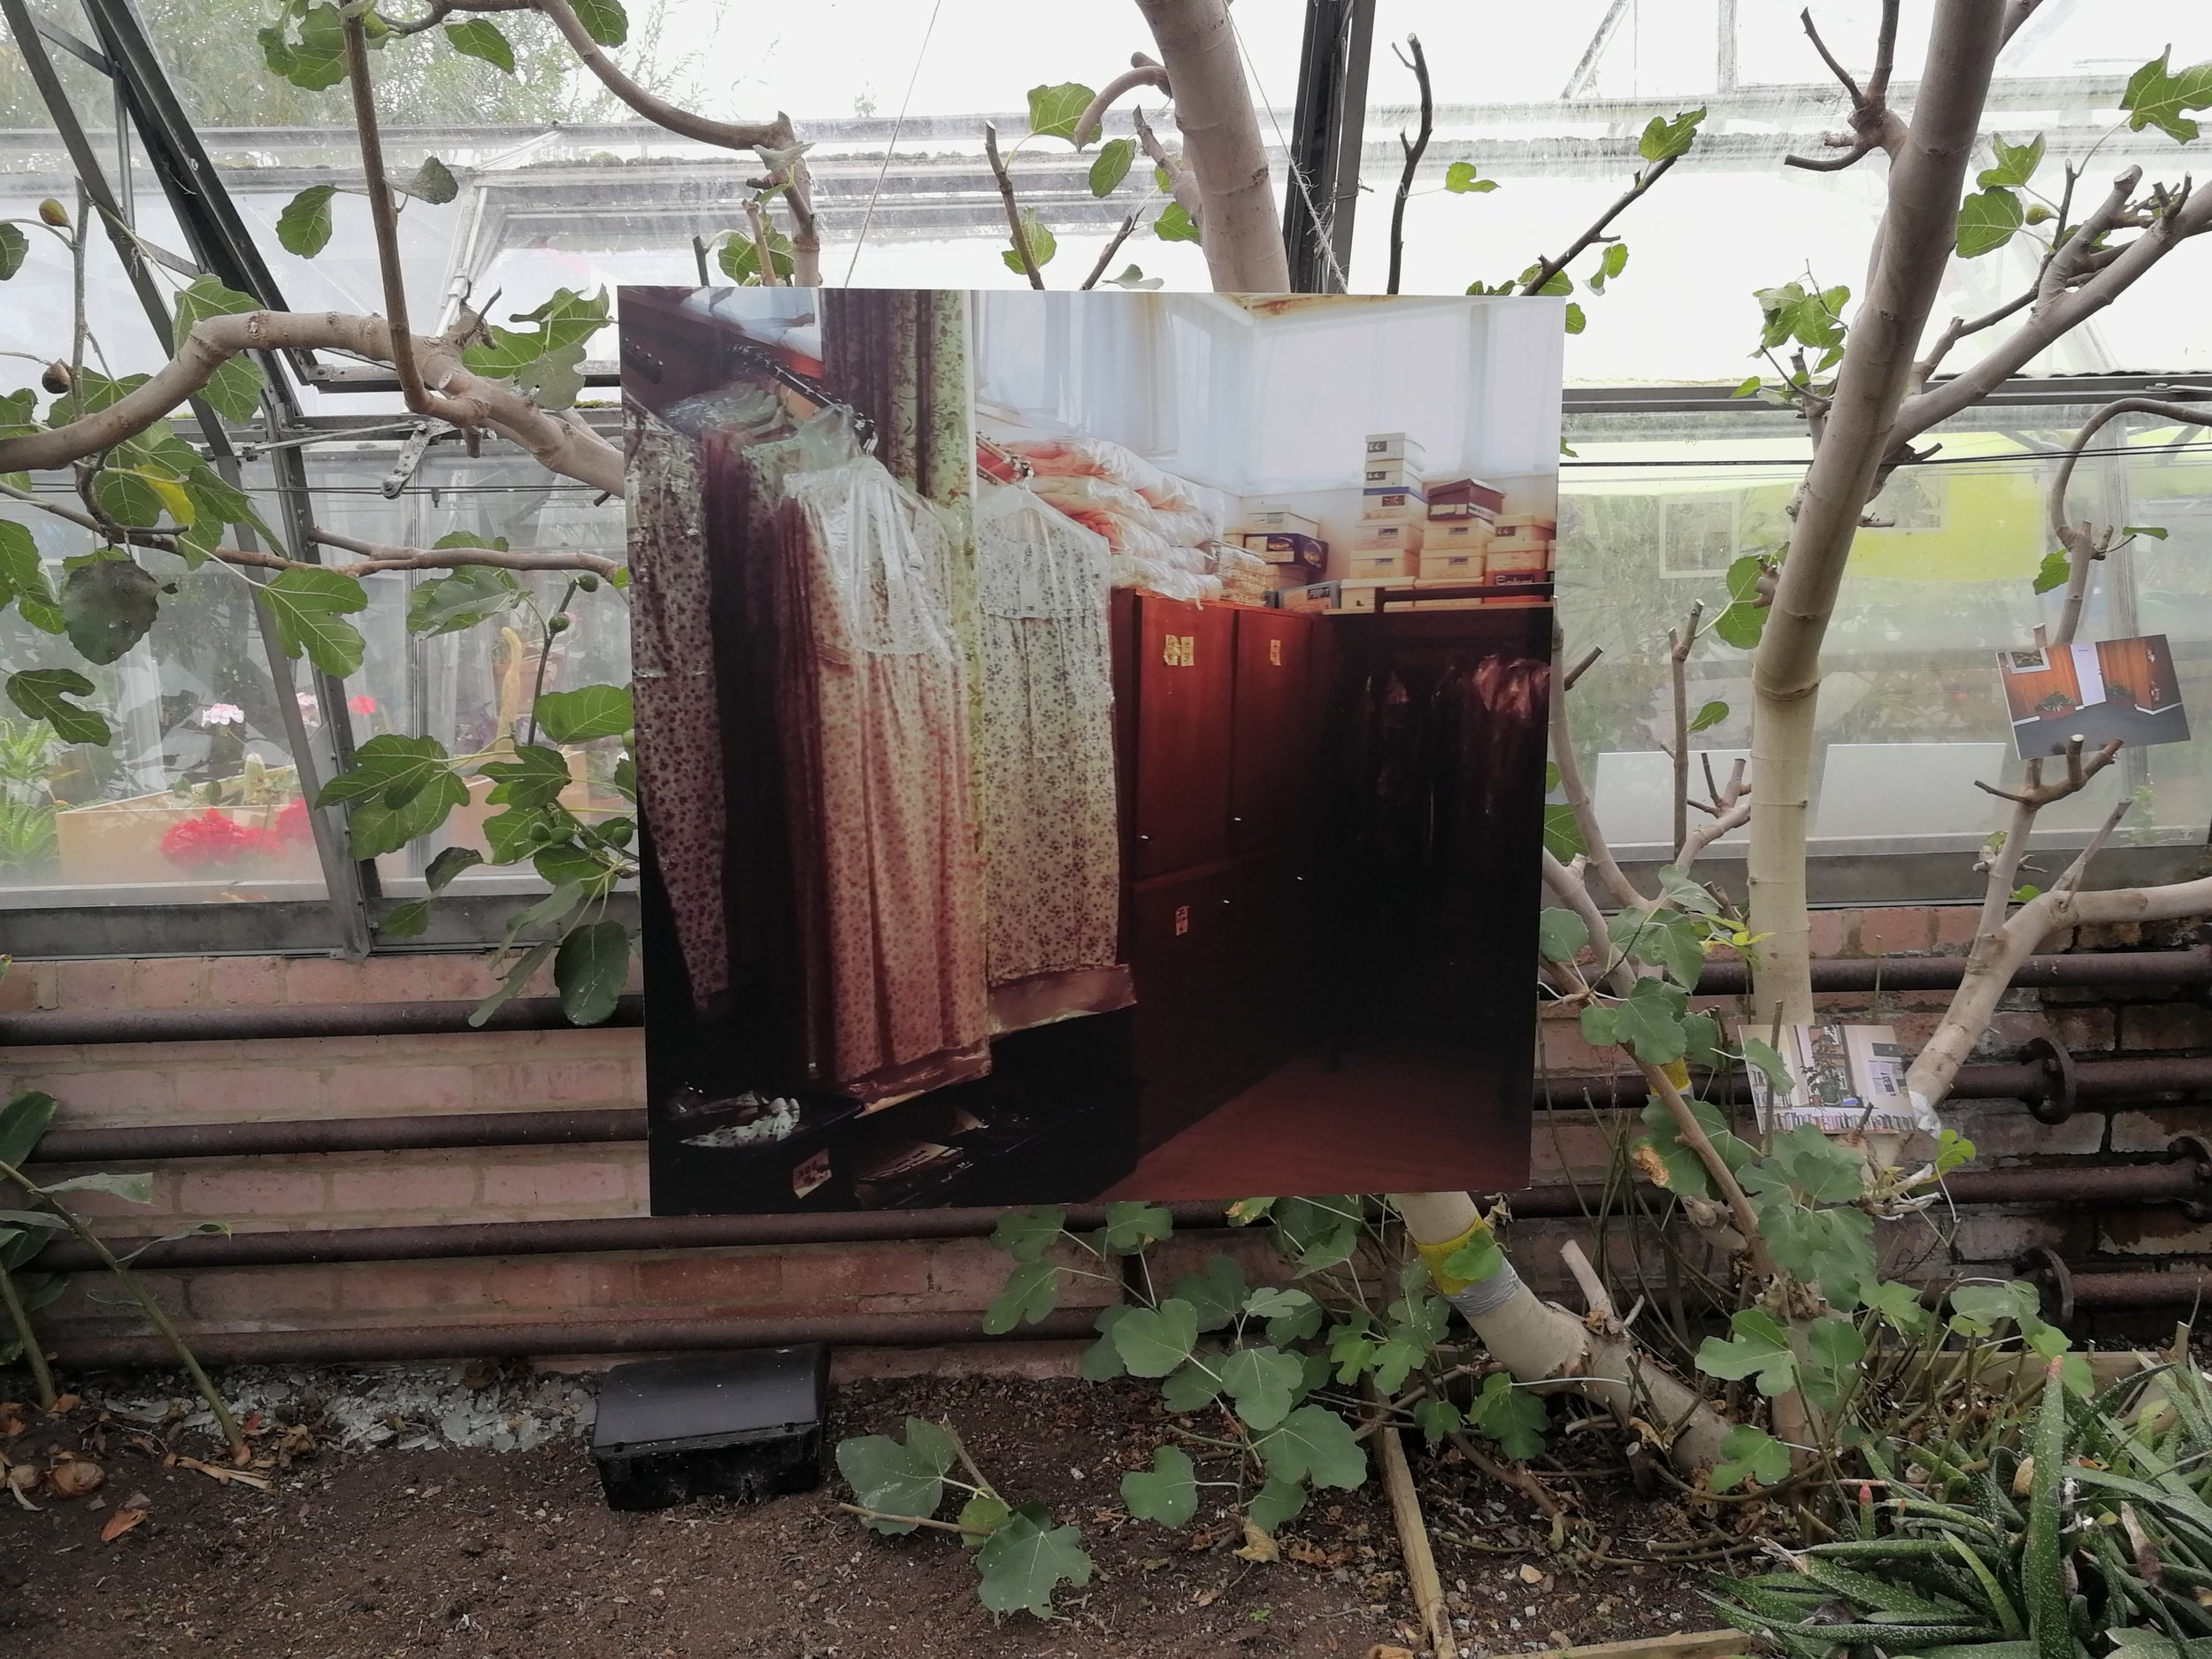 Installation image, from the REH Glasshouses temporary exhibition